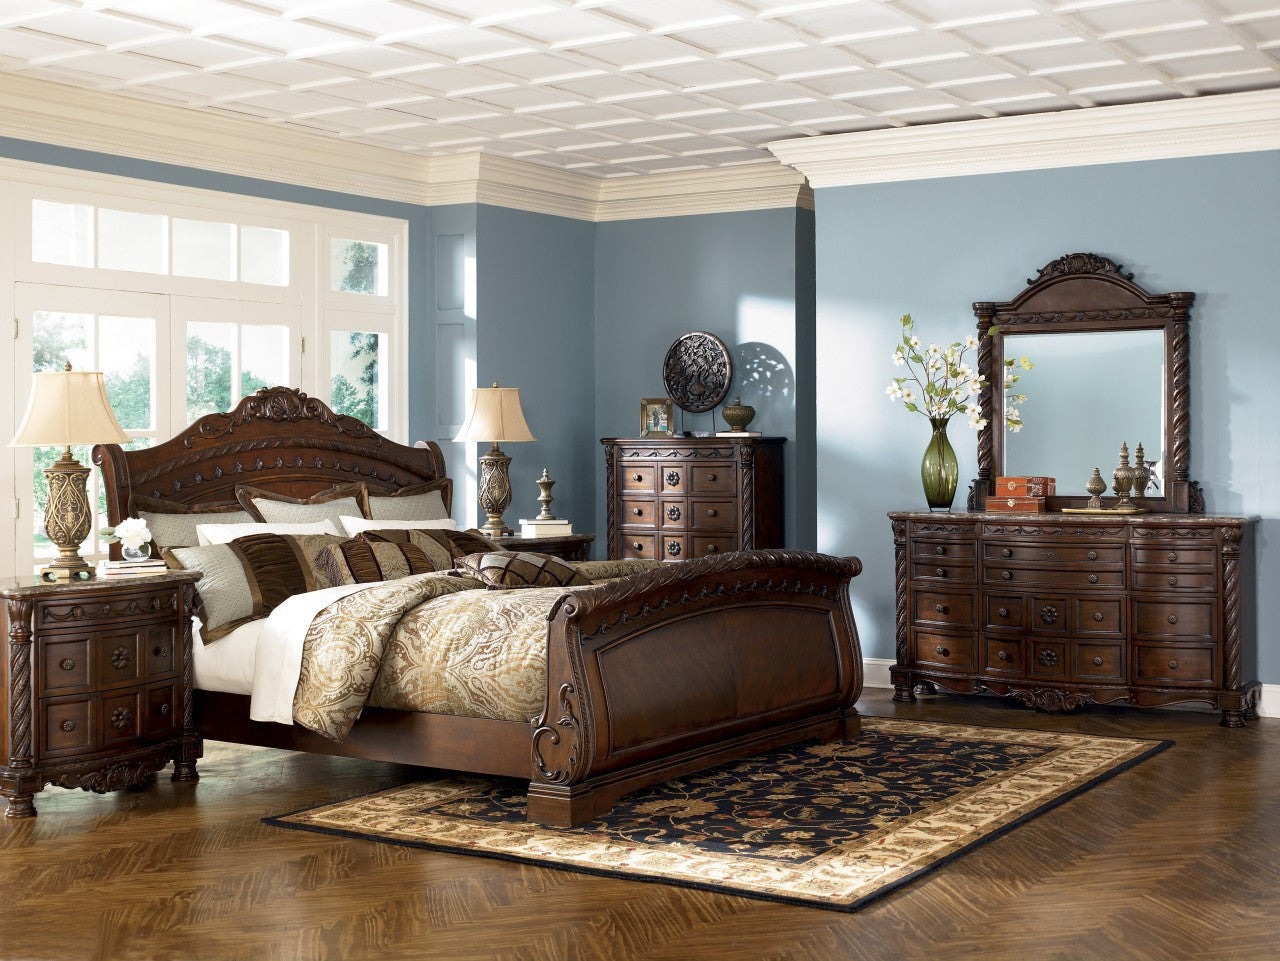 Picture of: North Shore Sleigh King Bedroom Set By Ashley Furniture My Furniture Place